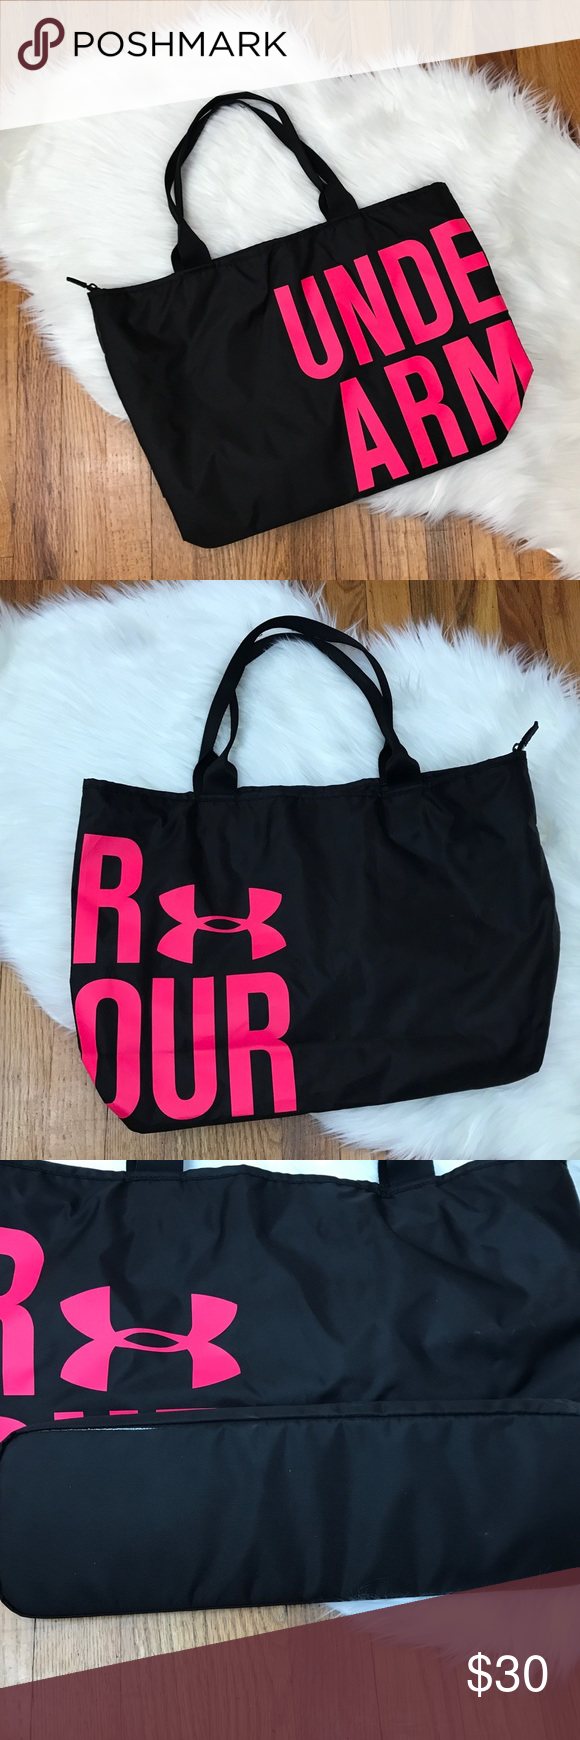 b6459f8e5b84 Under Armour Tote Bag Gently preloved - used 2-3 times. Minor signs of  wear